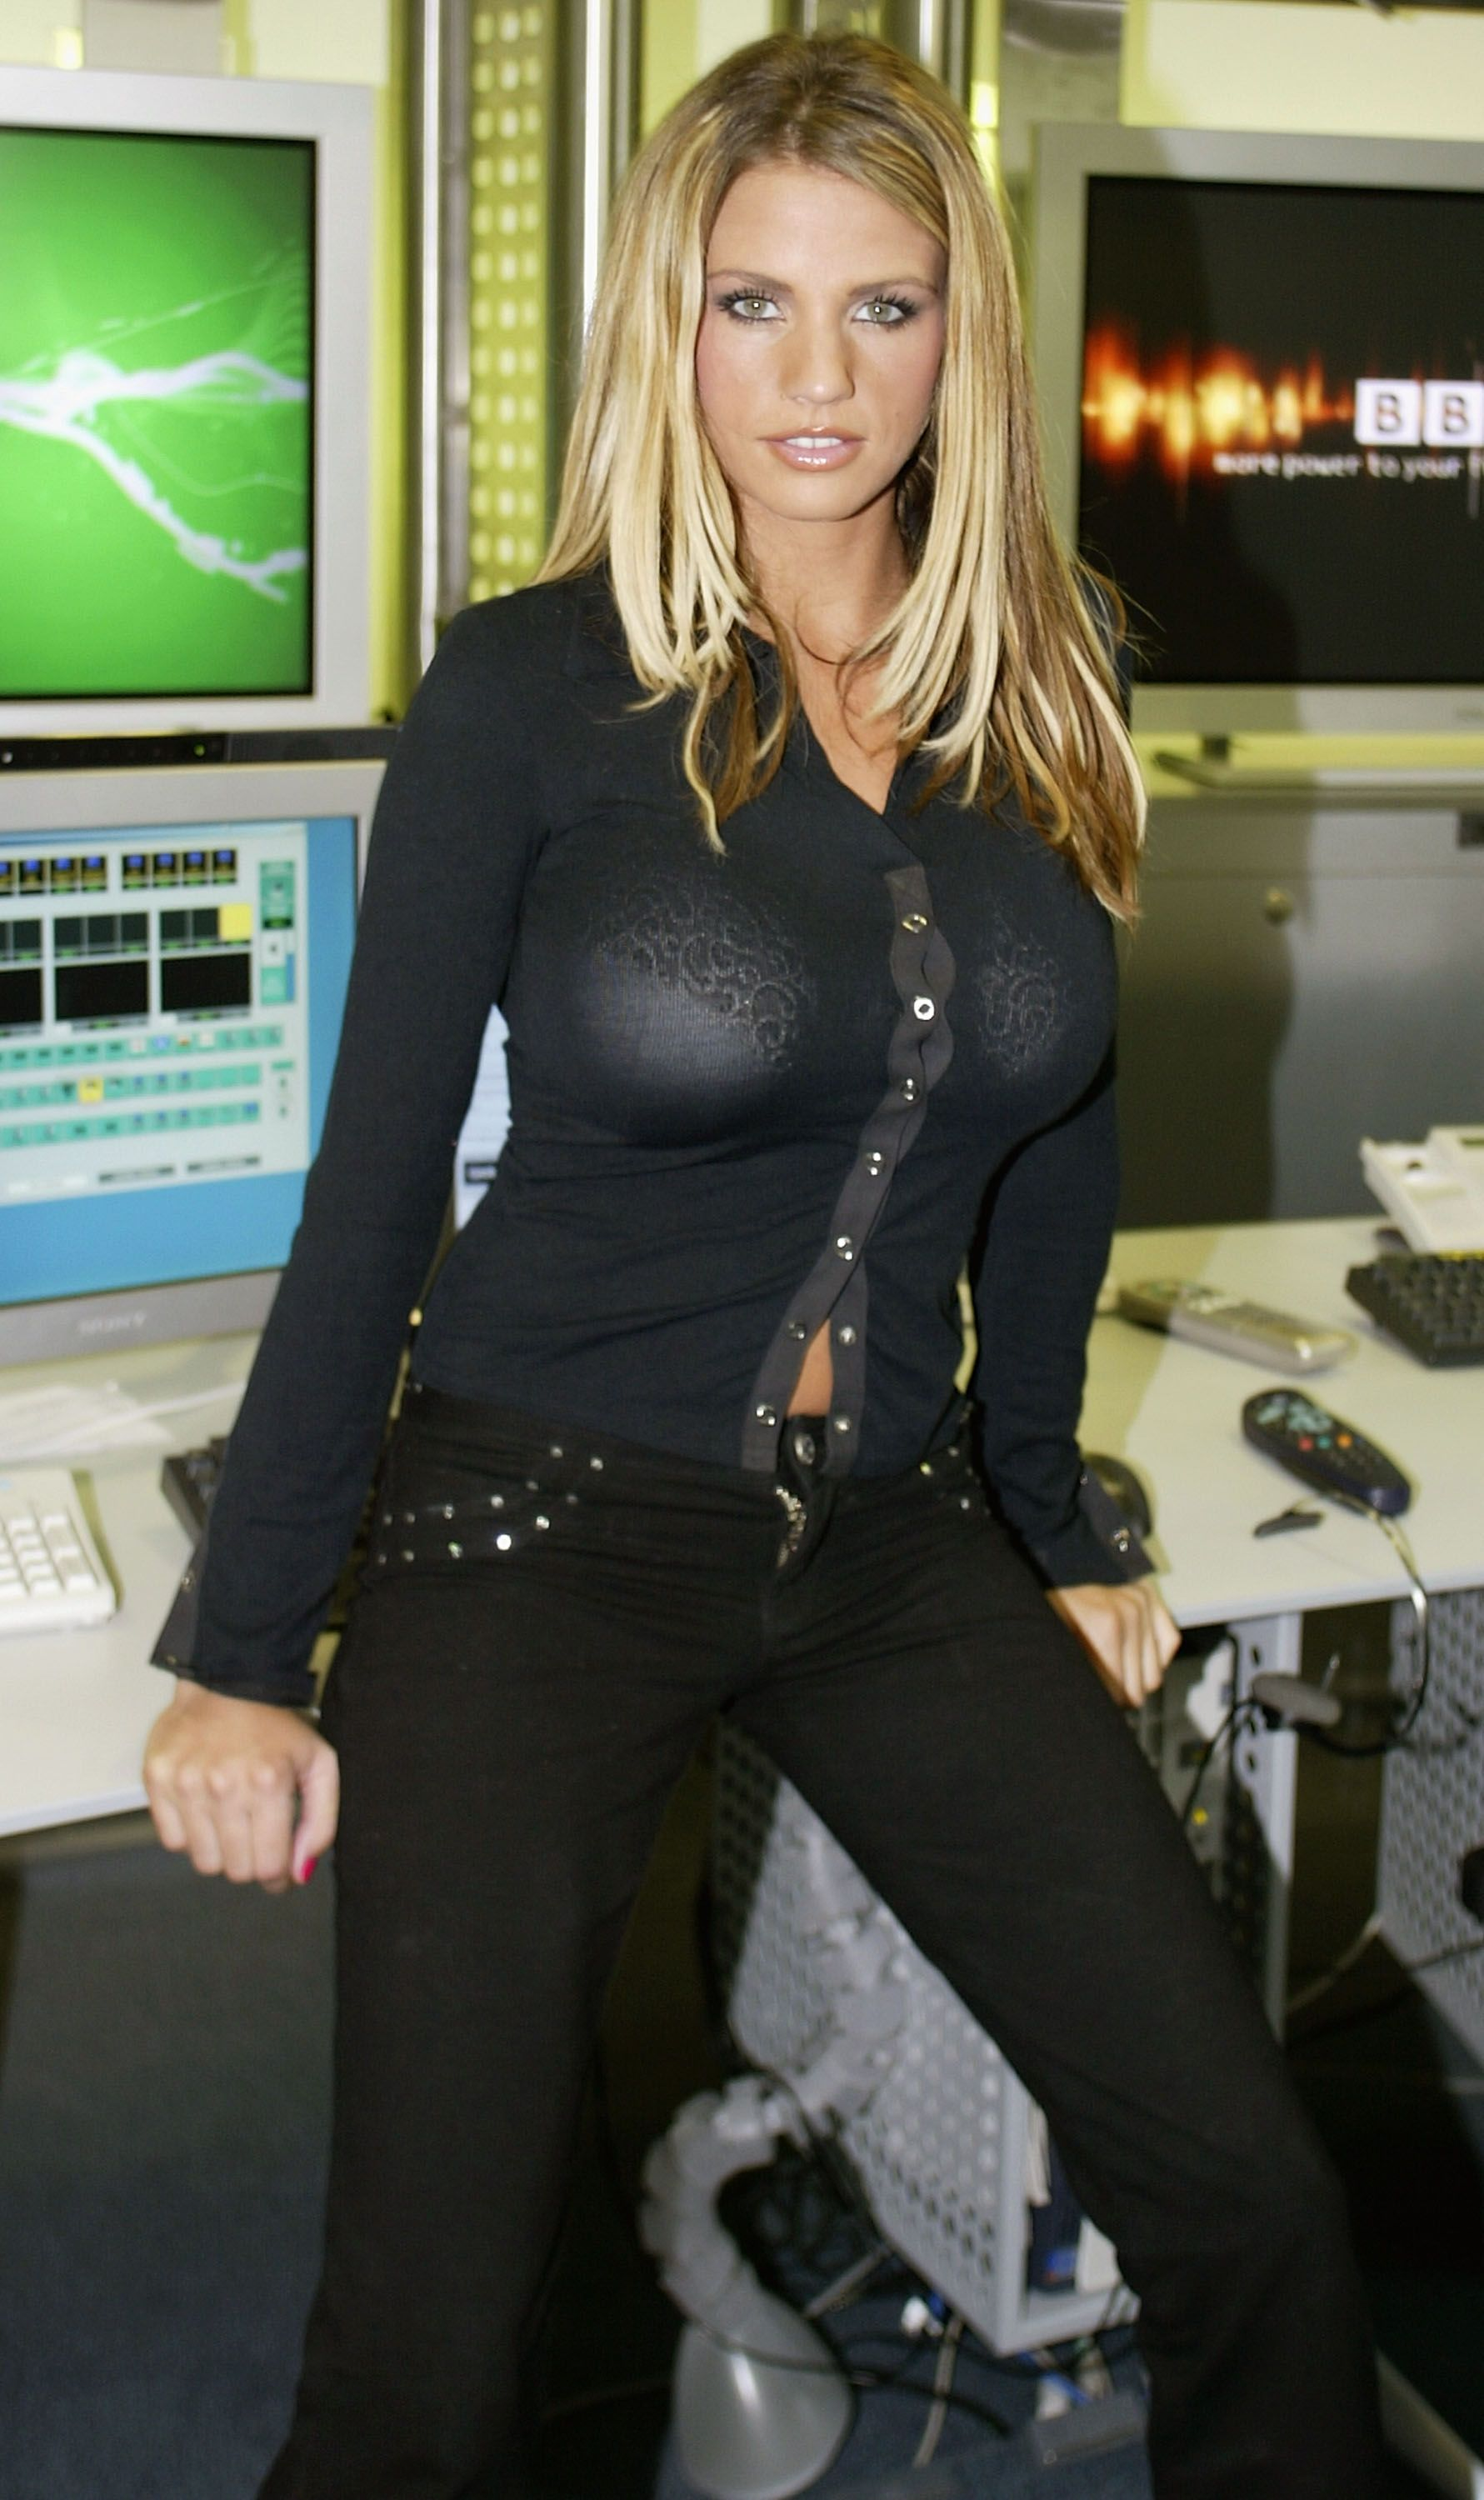 Katie Price at the BBCi studio in 2002 in London, England | Source: Getty Images